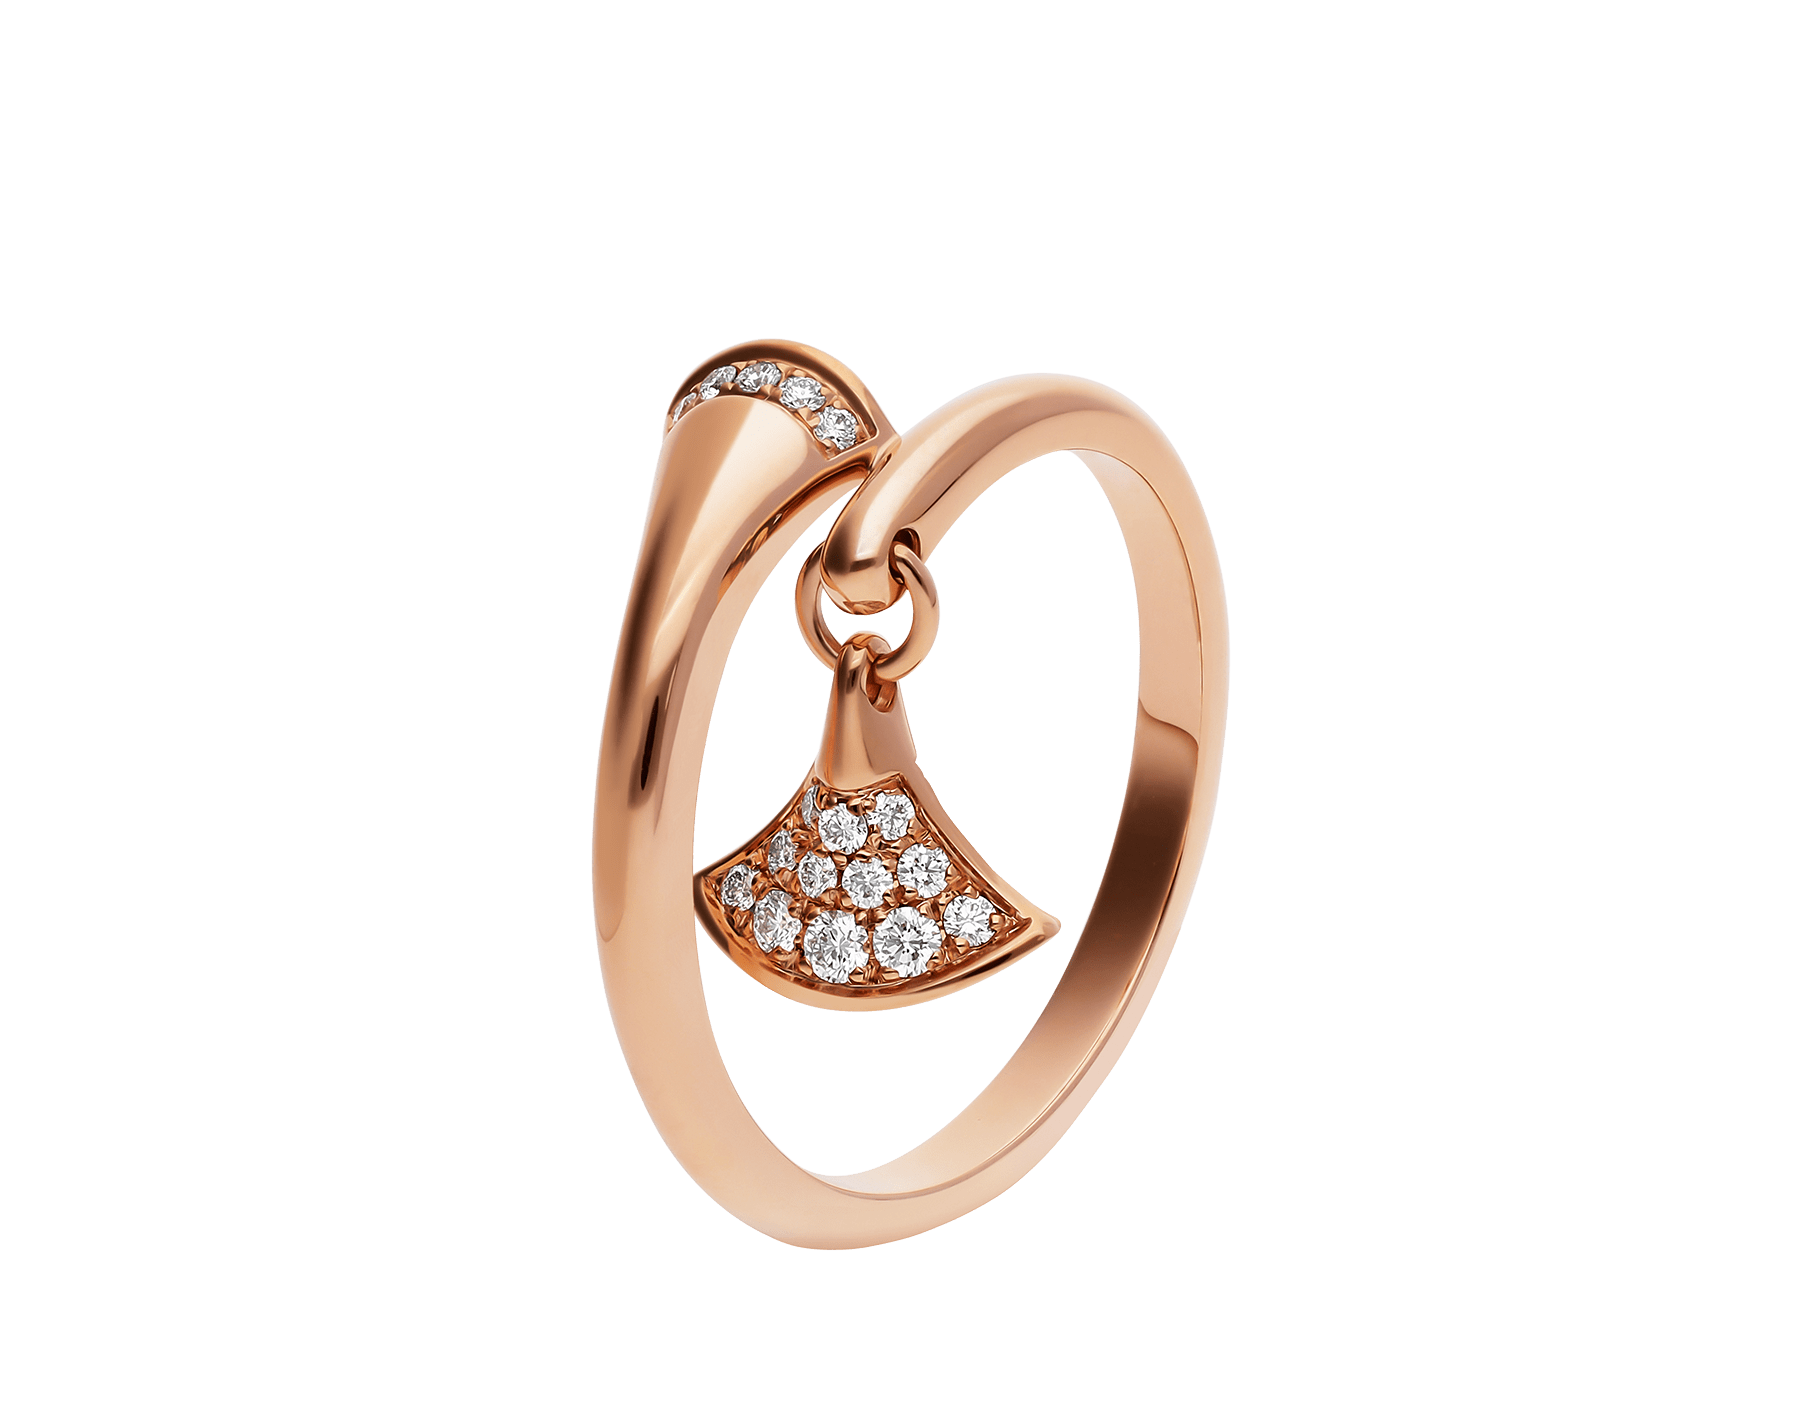 DIVAS' DREAM ring in 18 kt rose gold, set with pavé diamonds. AN857373 image 1